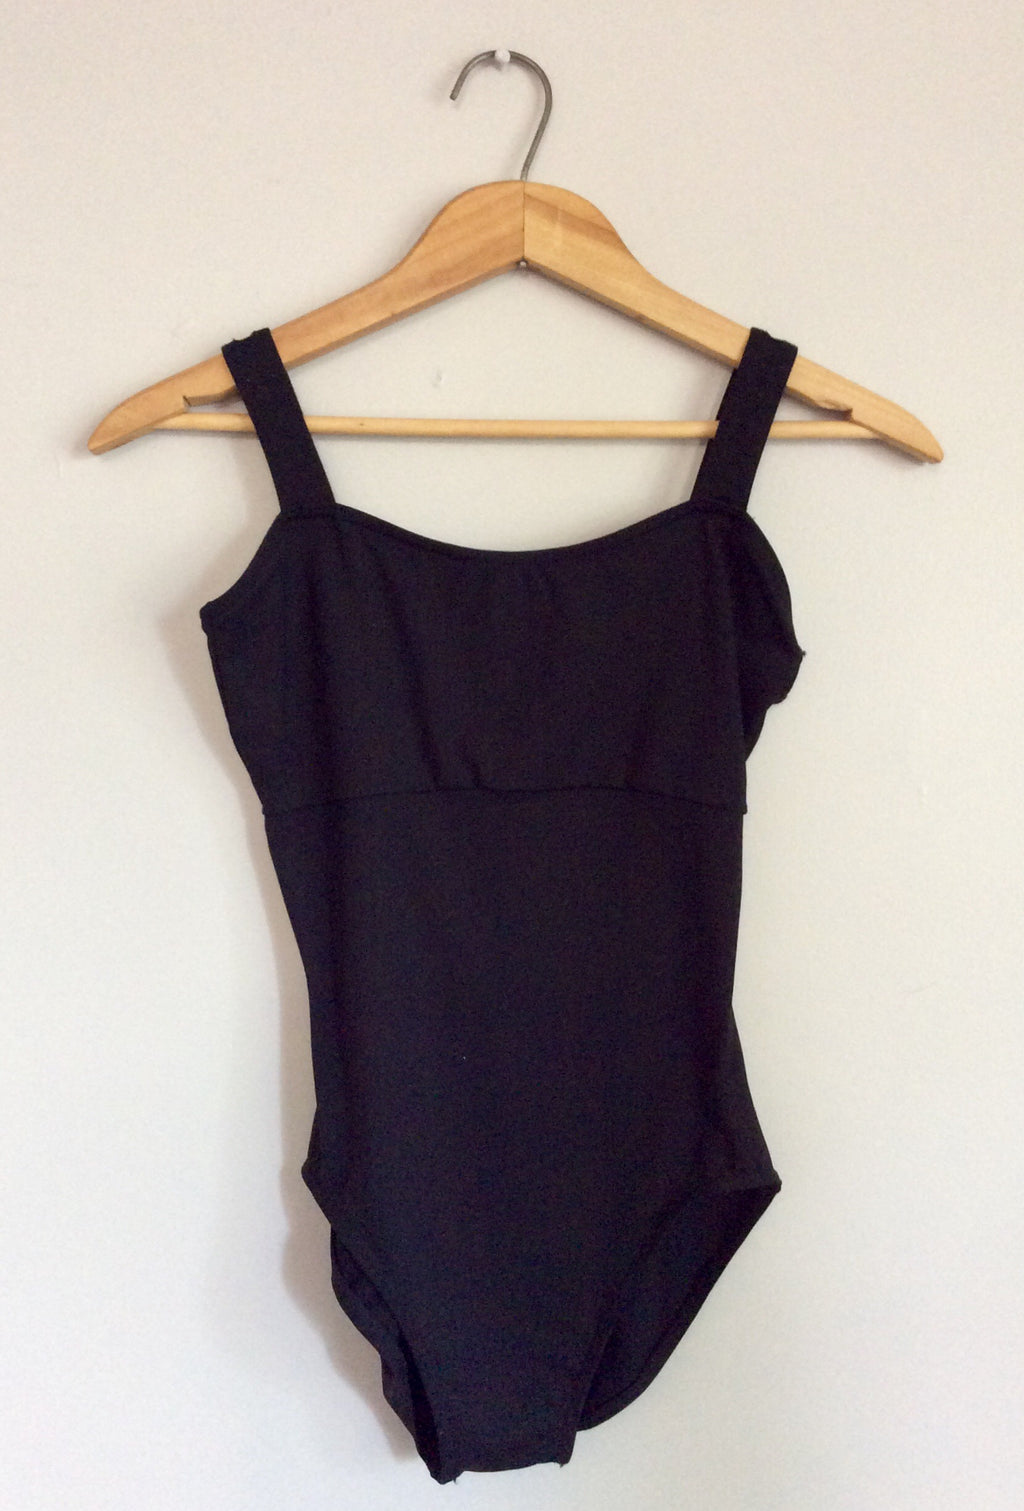 Simple black bodysuit